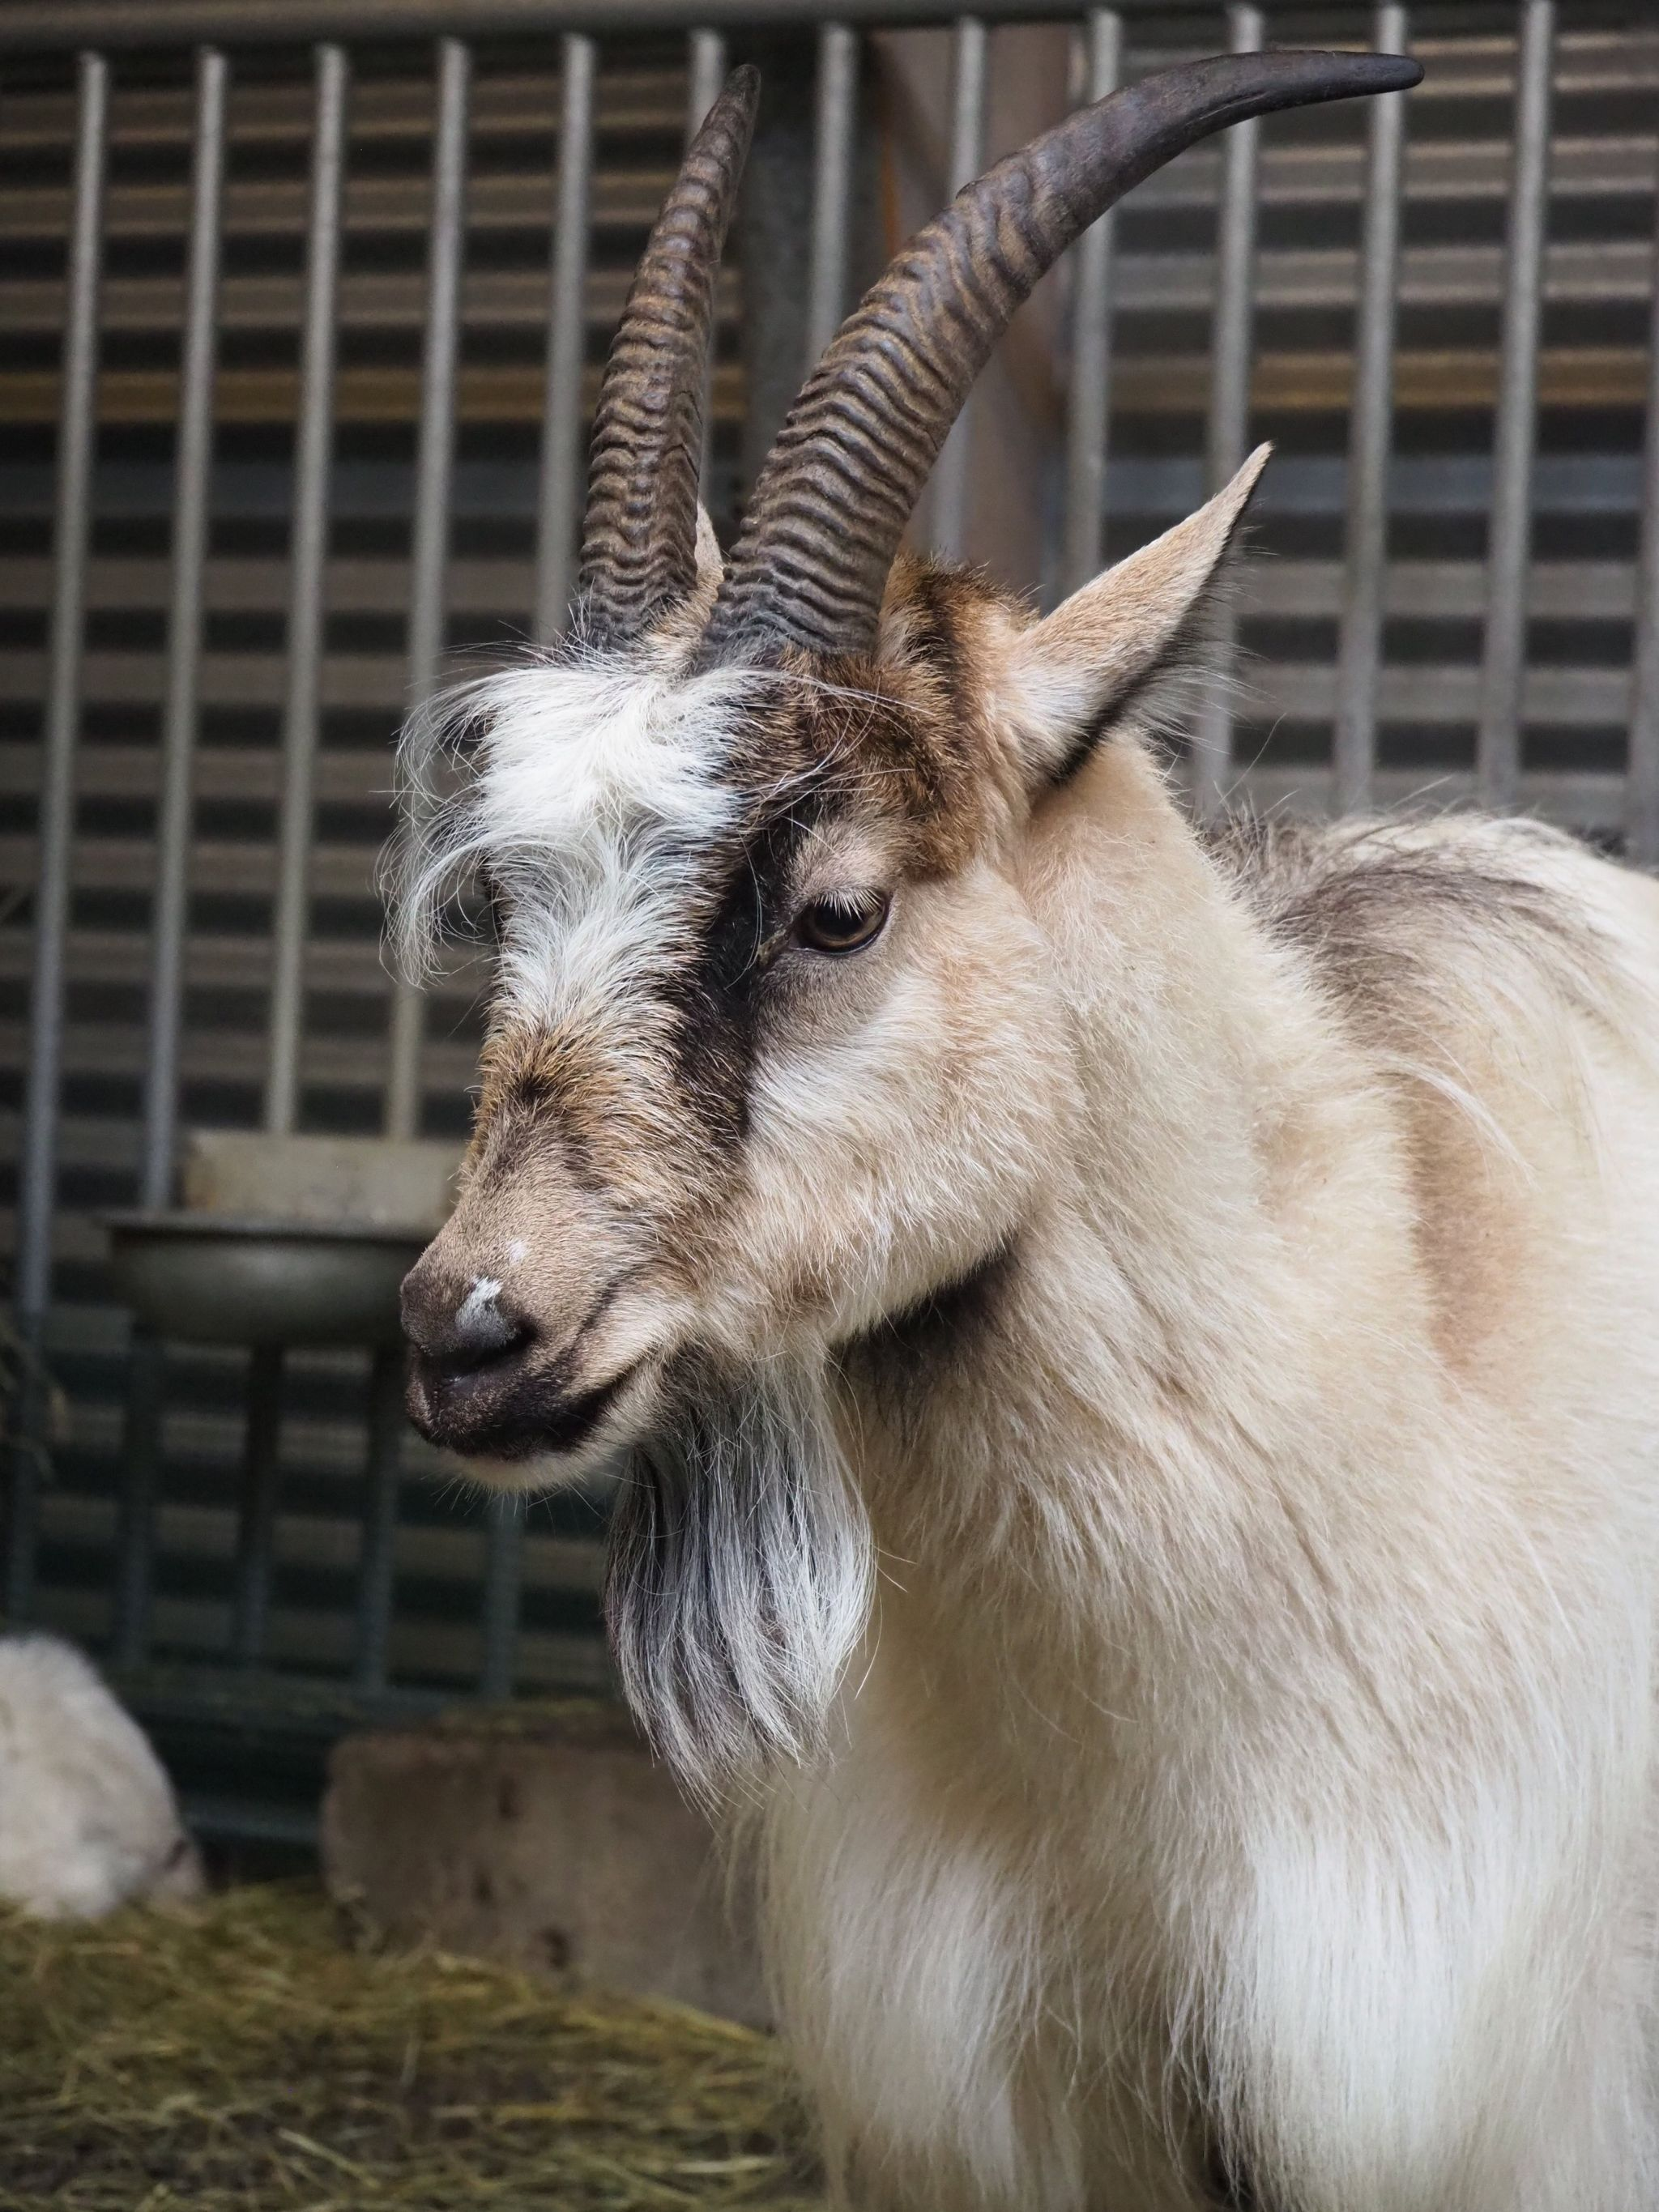 portrait of an adult goat